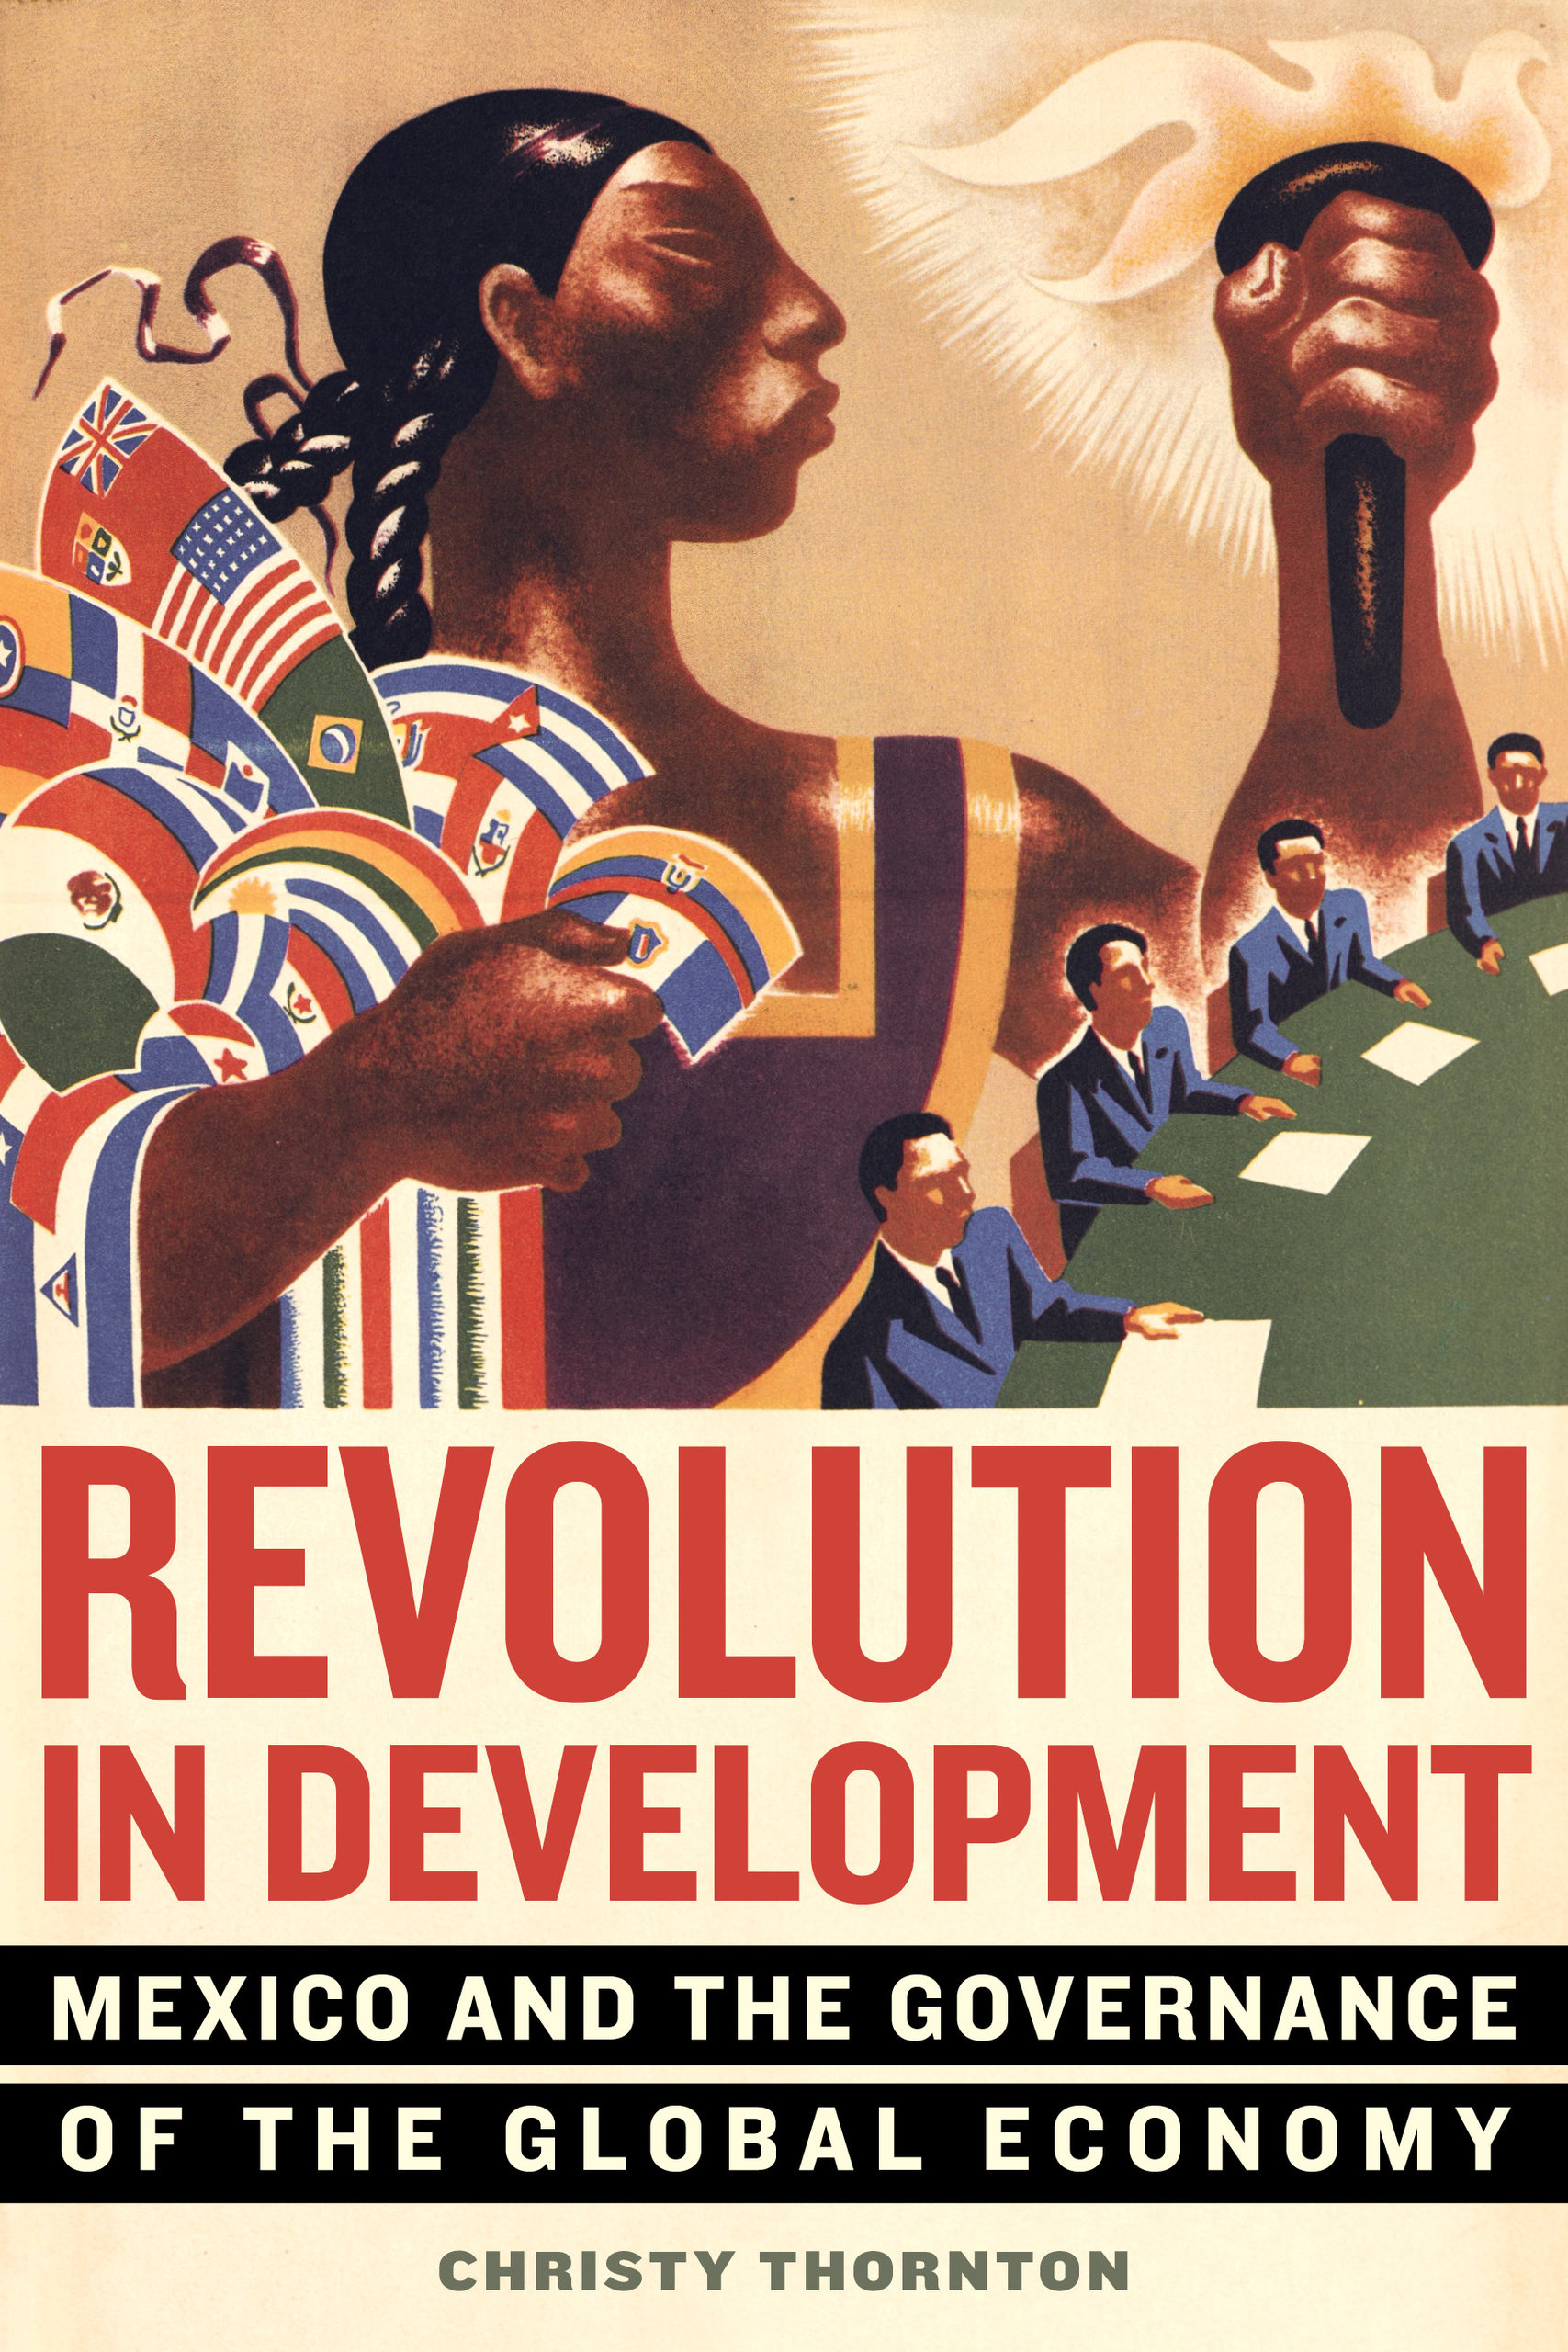 Revolution in Development